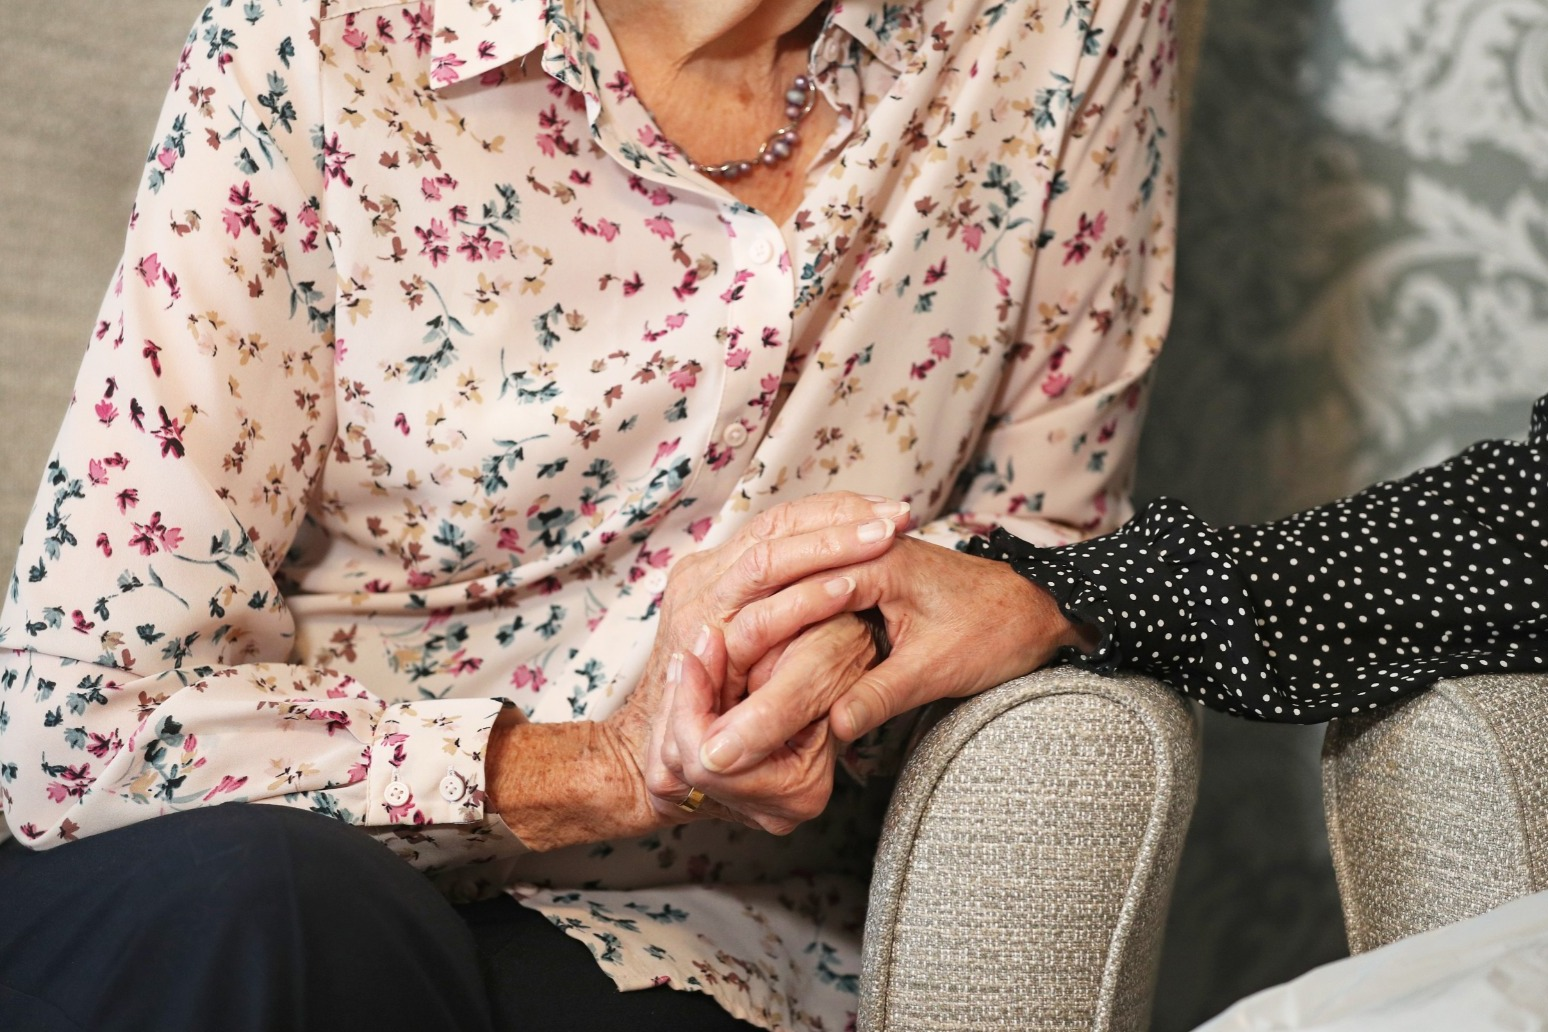 Last chance for England\'s care home workers to get first dose of Covid vaccine